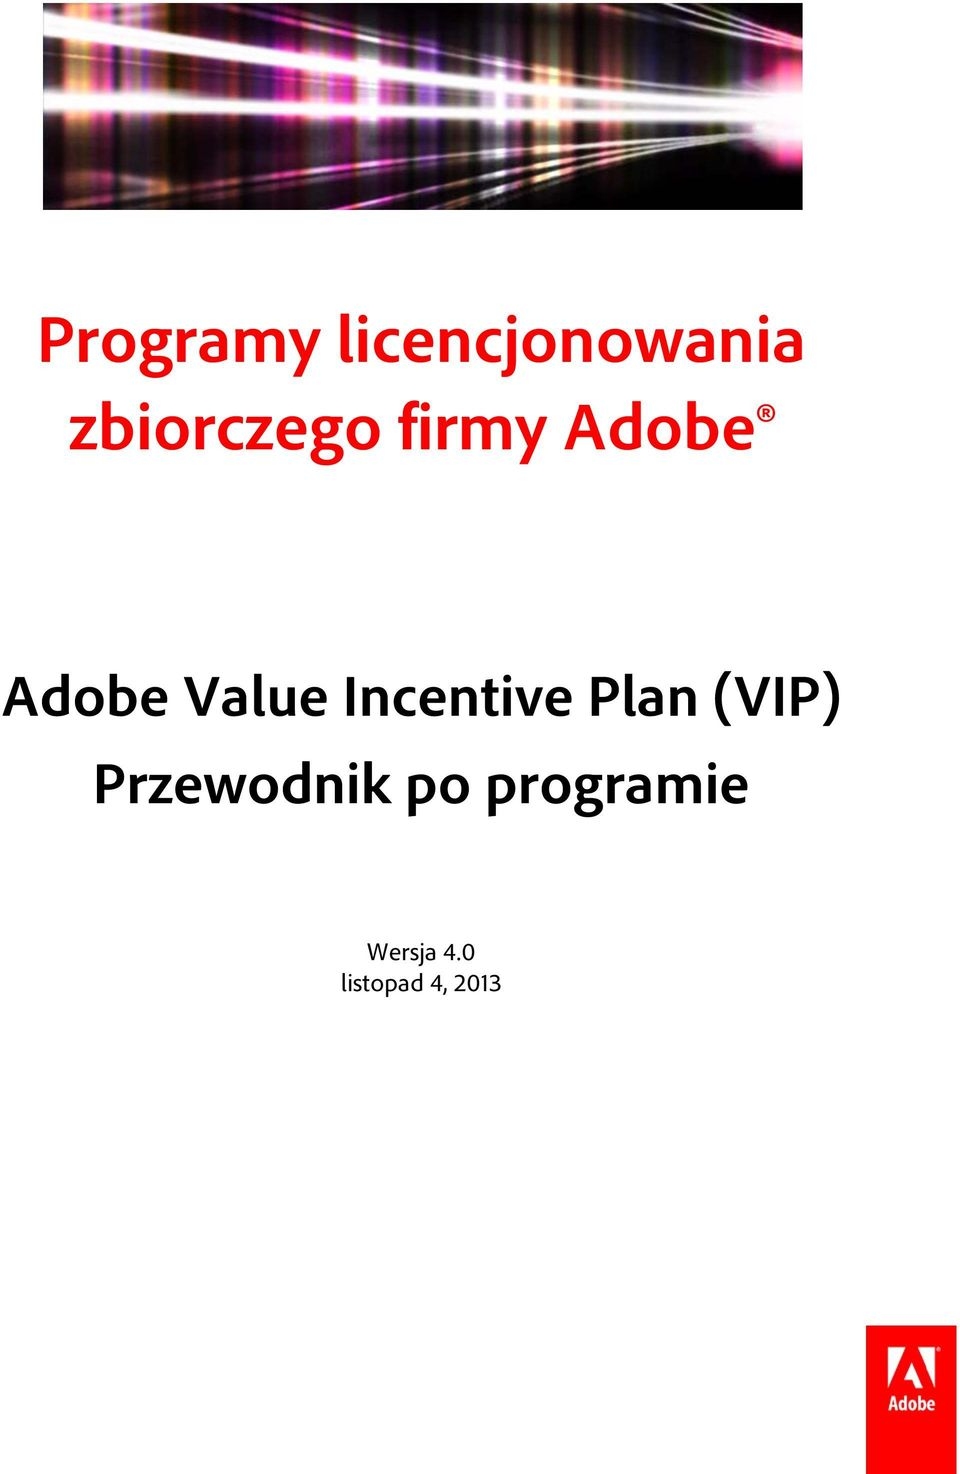 Value Incentive Plan (VIP)